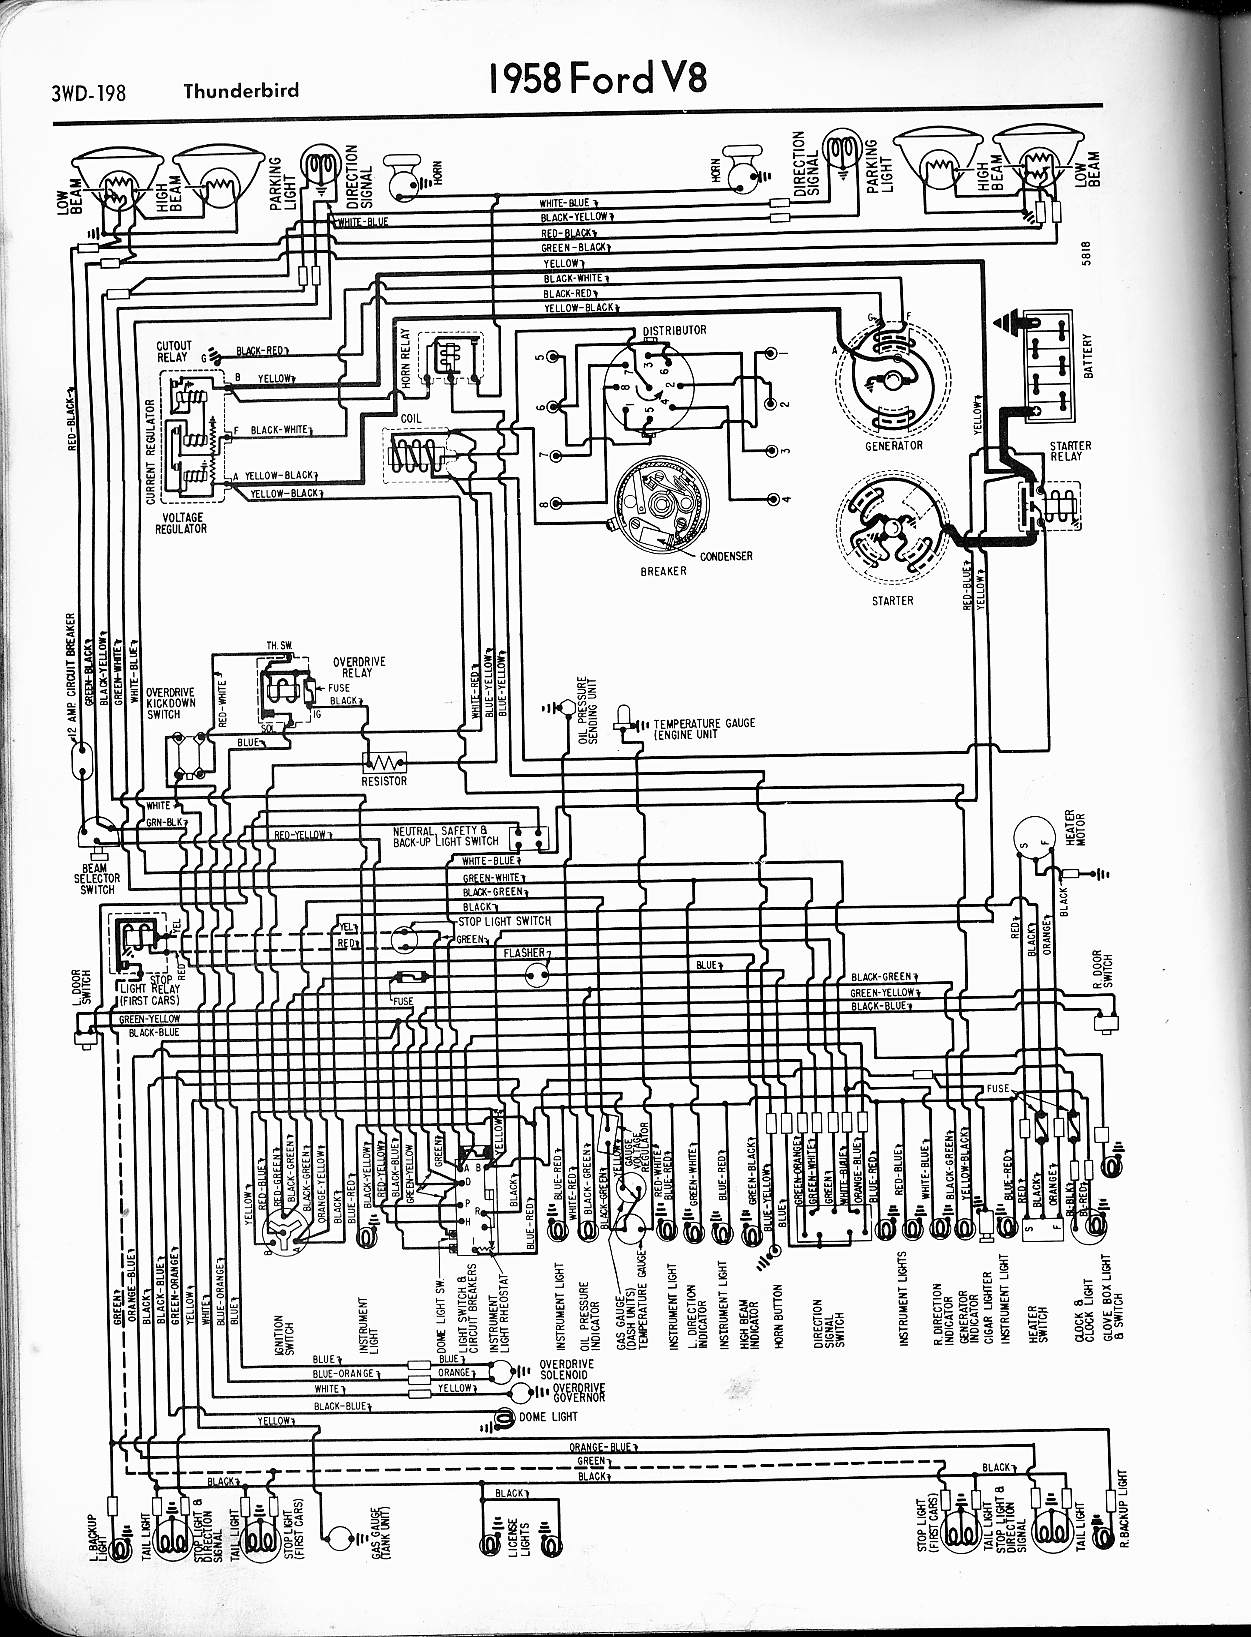 1981 Ford Thunderbird Wiring Diagram Schematics Diagrams F 150 Headlight Switch 1957 Rh Enr Green Com 1963 F100